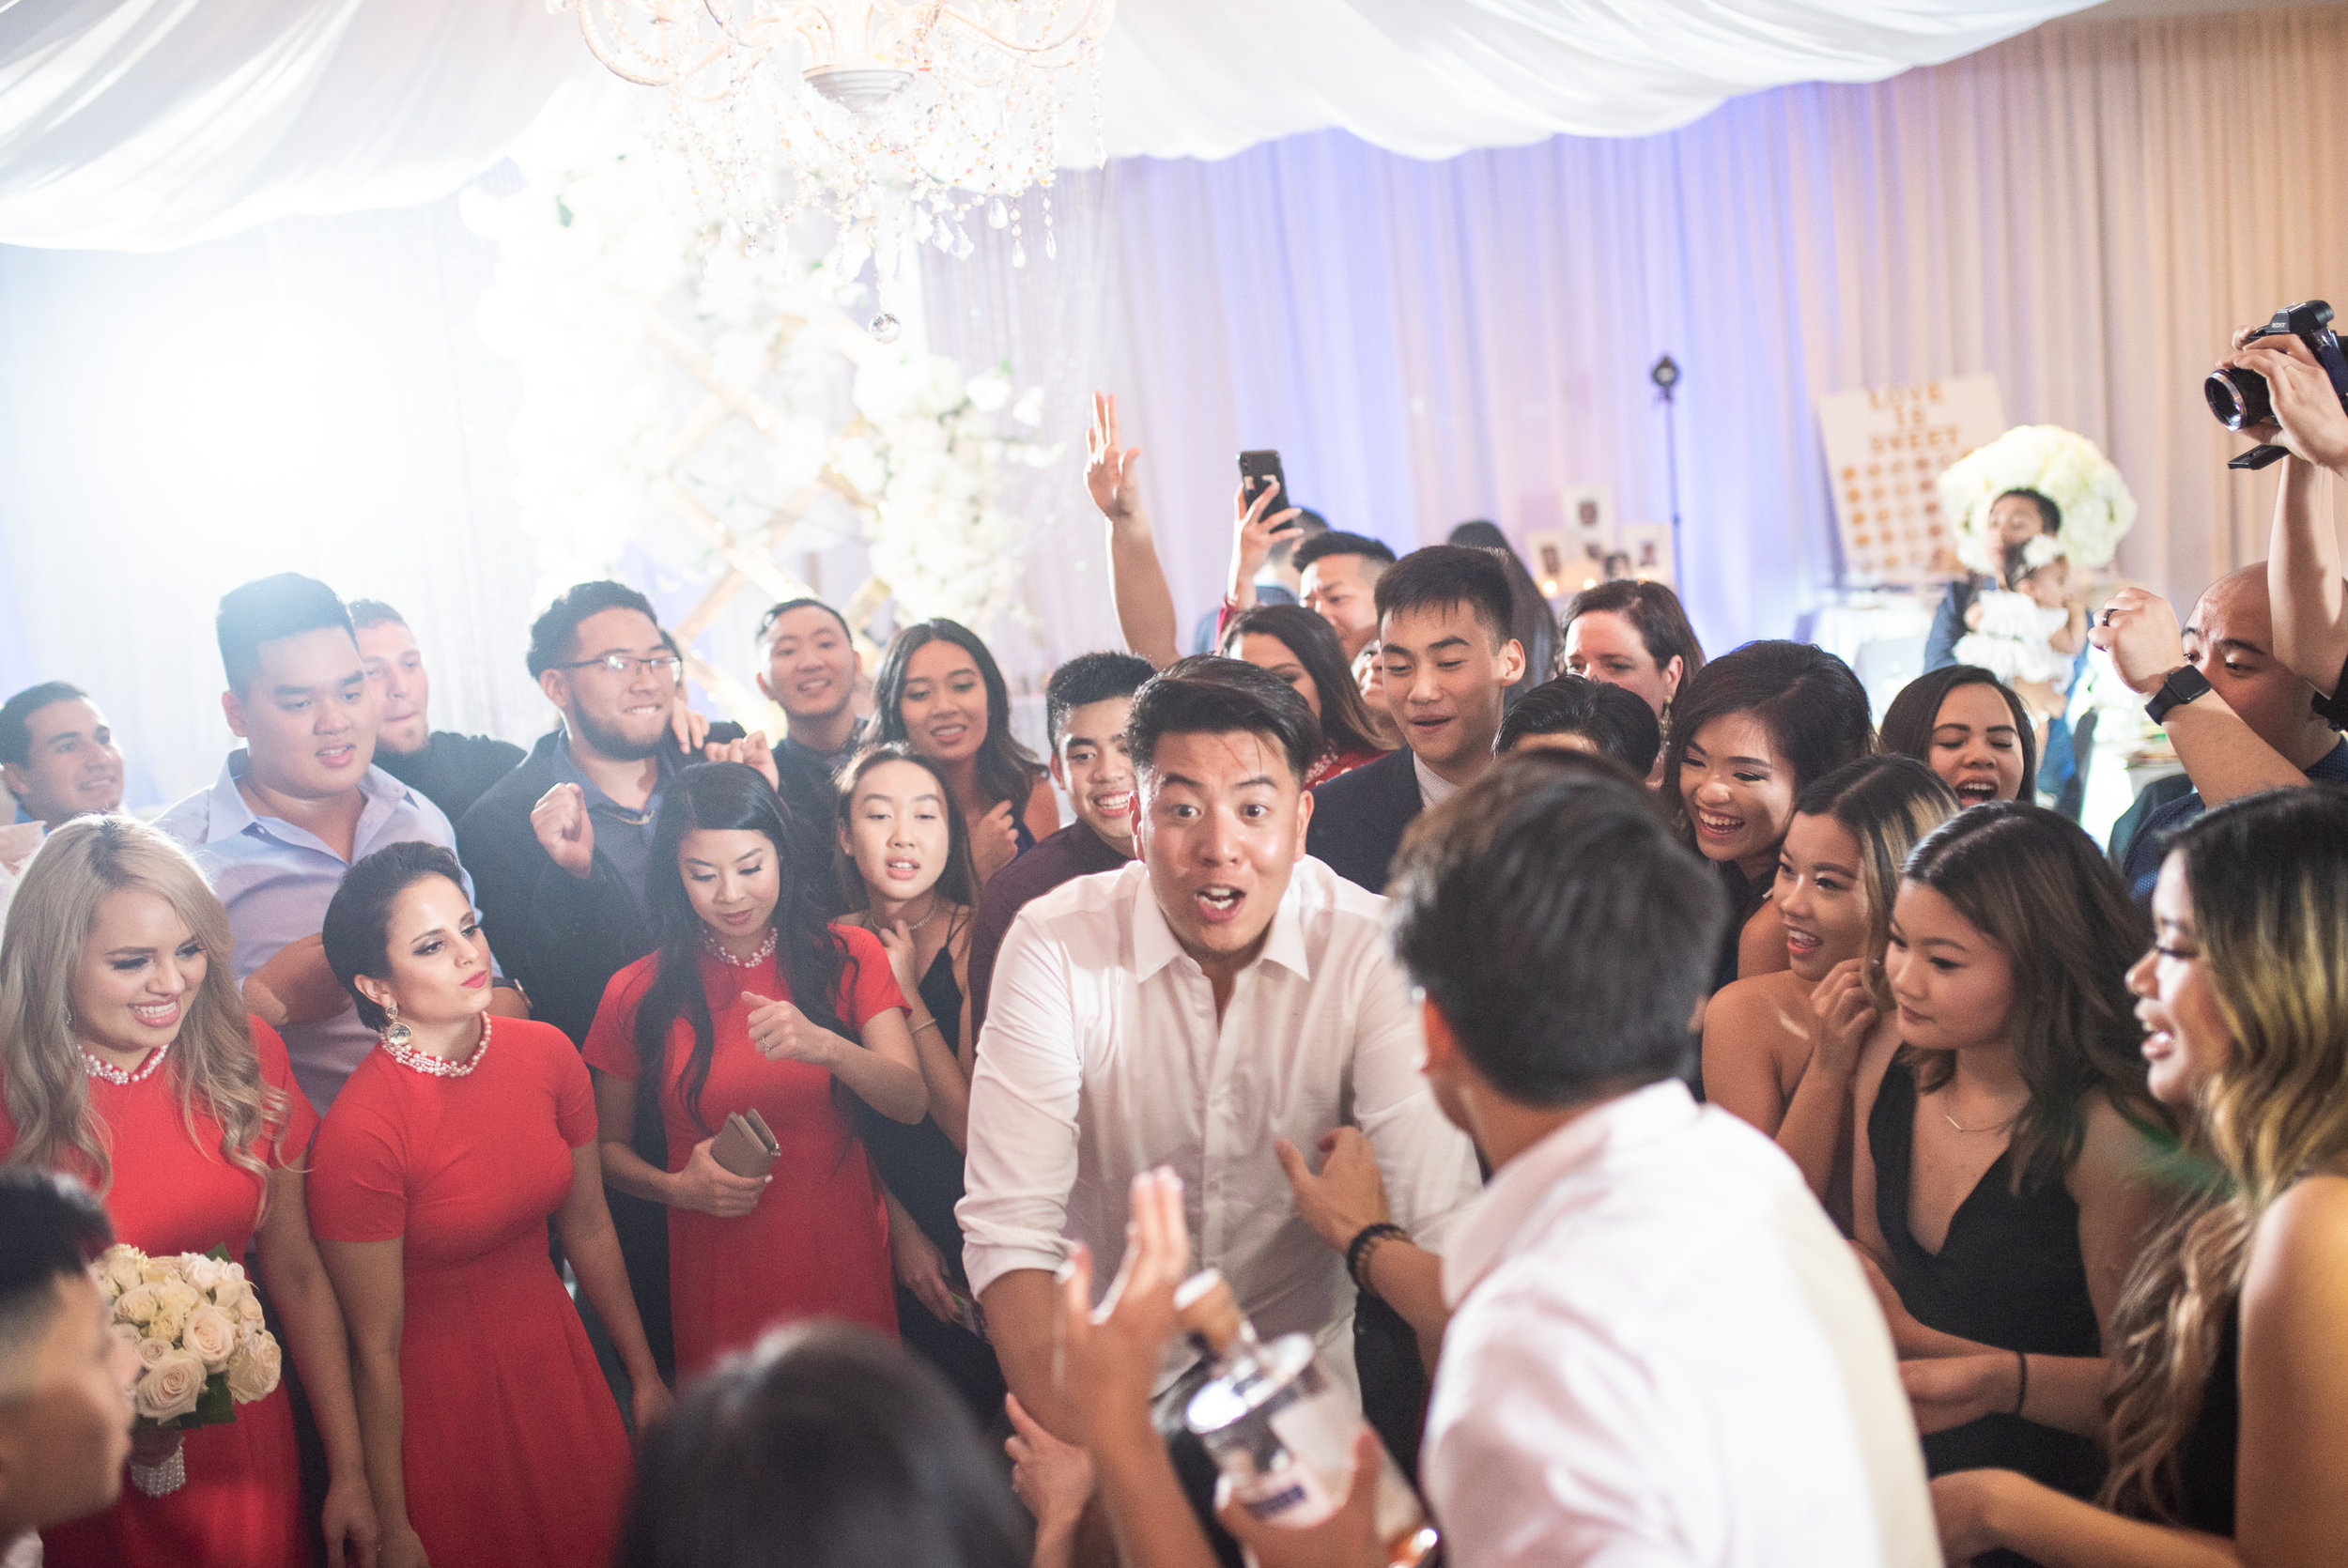 Dream_Wedding_Thanh_Thanh-2897.jpg